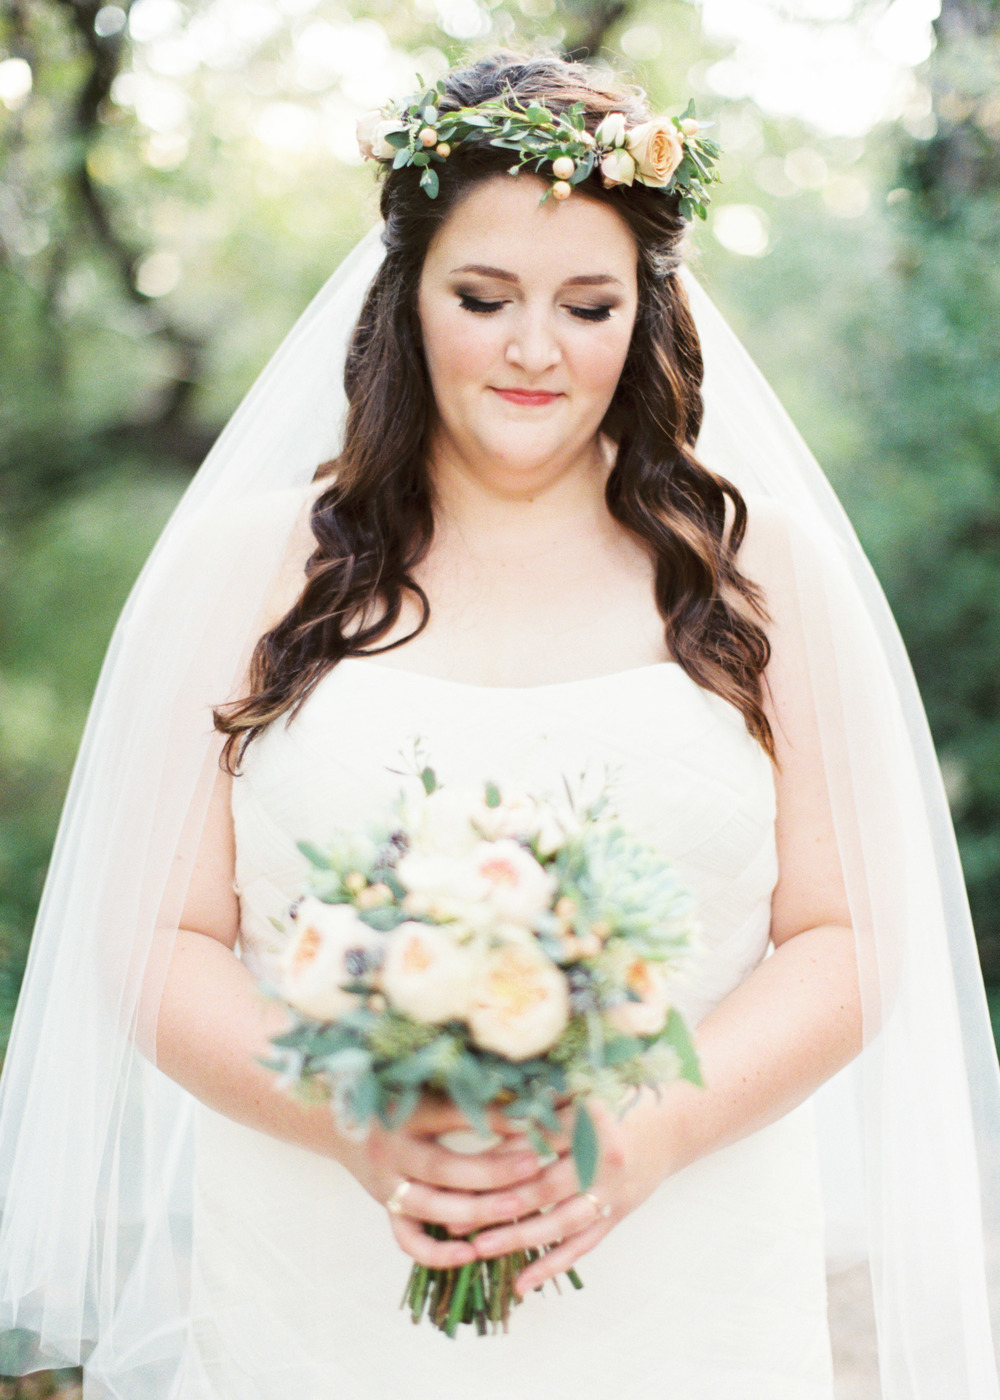 Sarah Best Photography - Elizabeth's Bridals - 7F Lodge-126.jpg